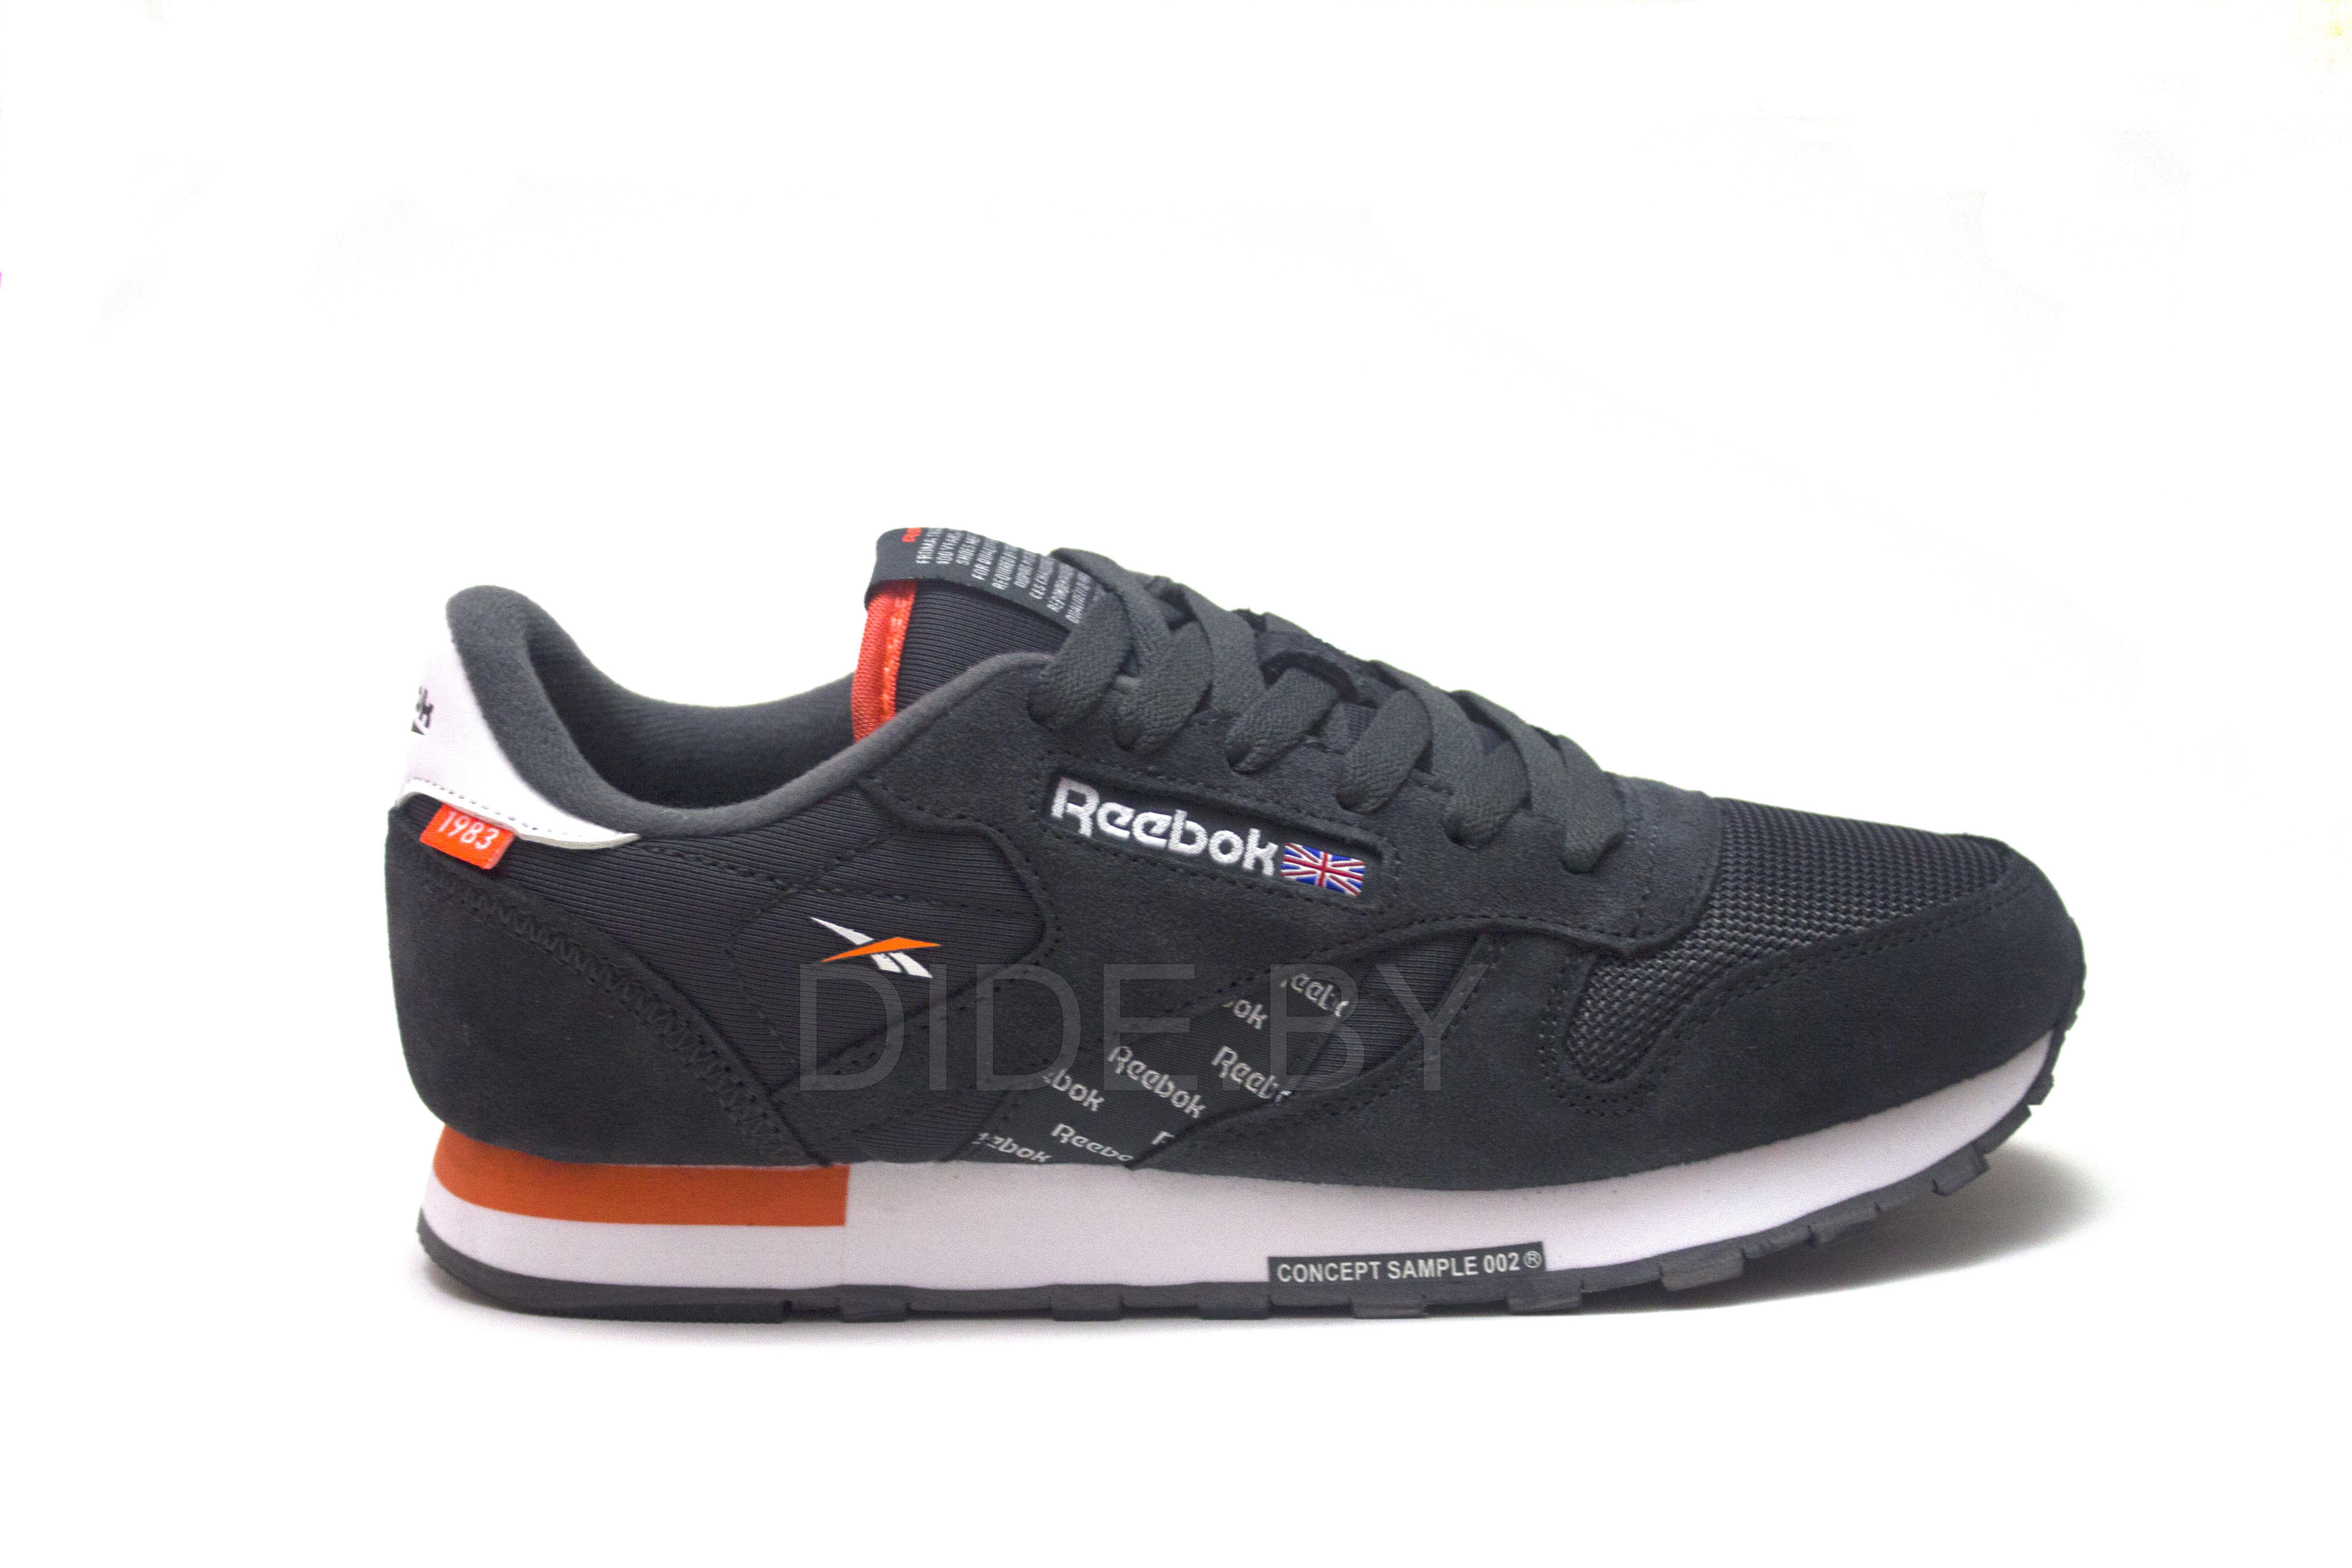 Изображение кроссовок reebok-concept-sample-002-133